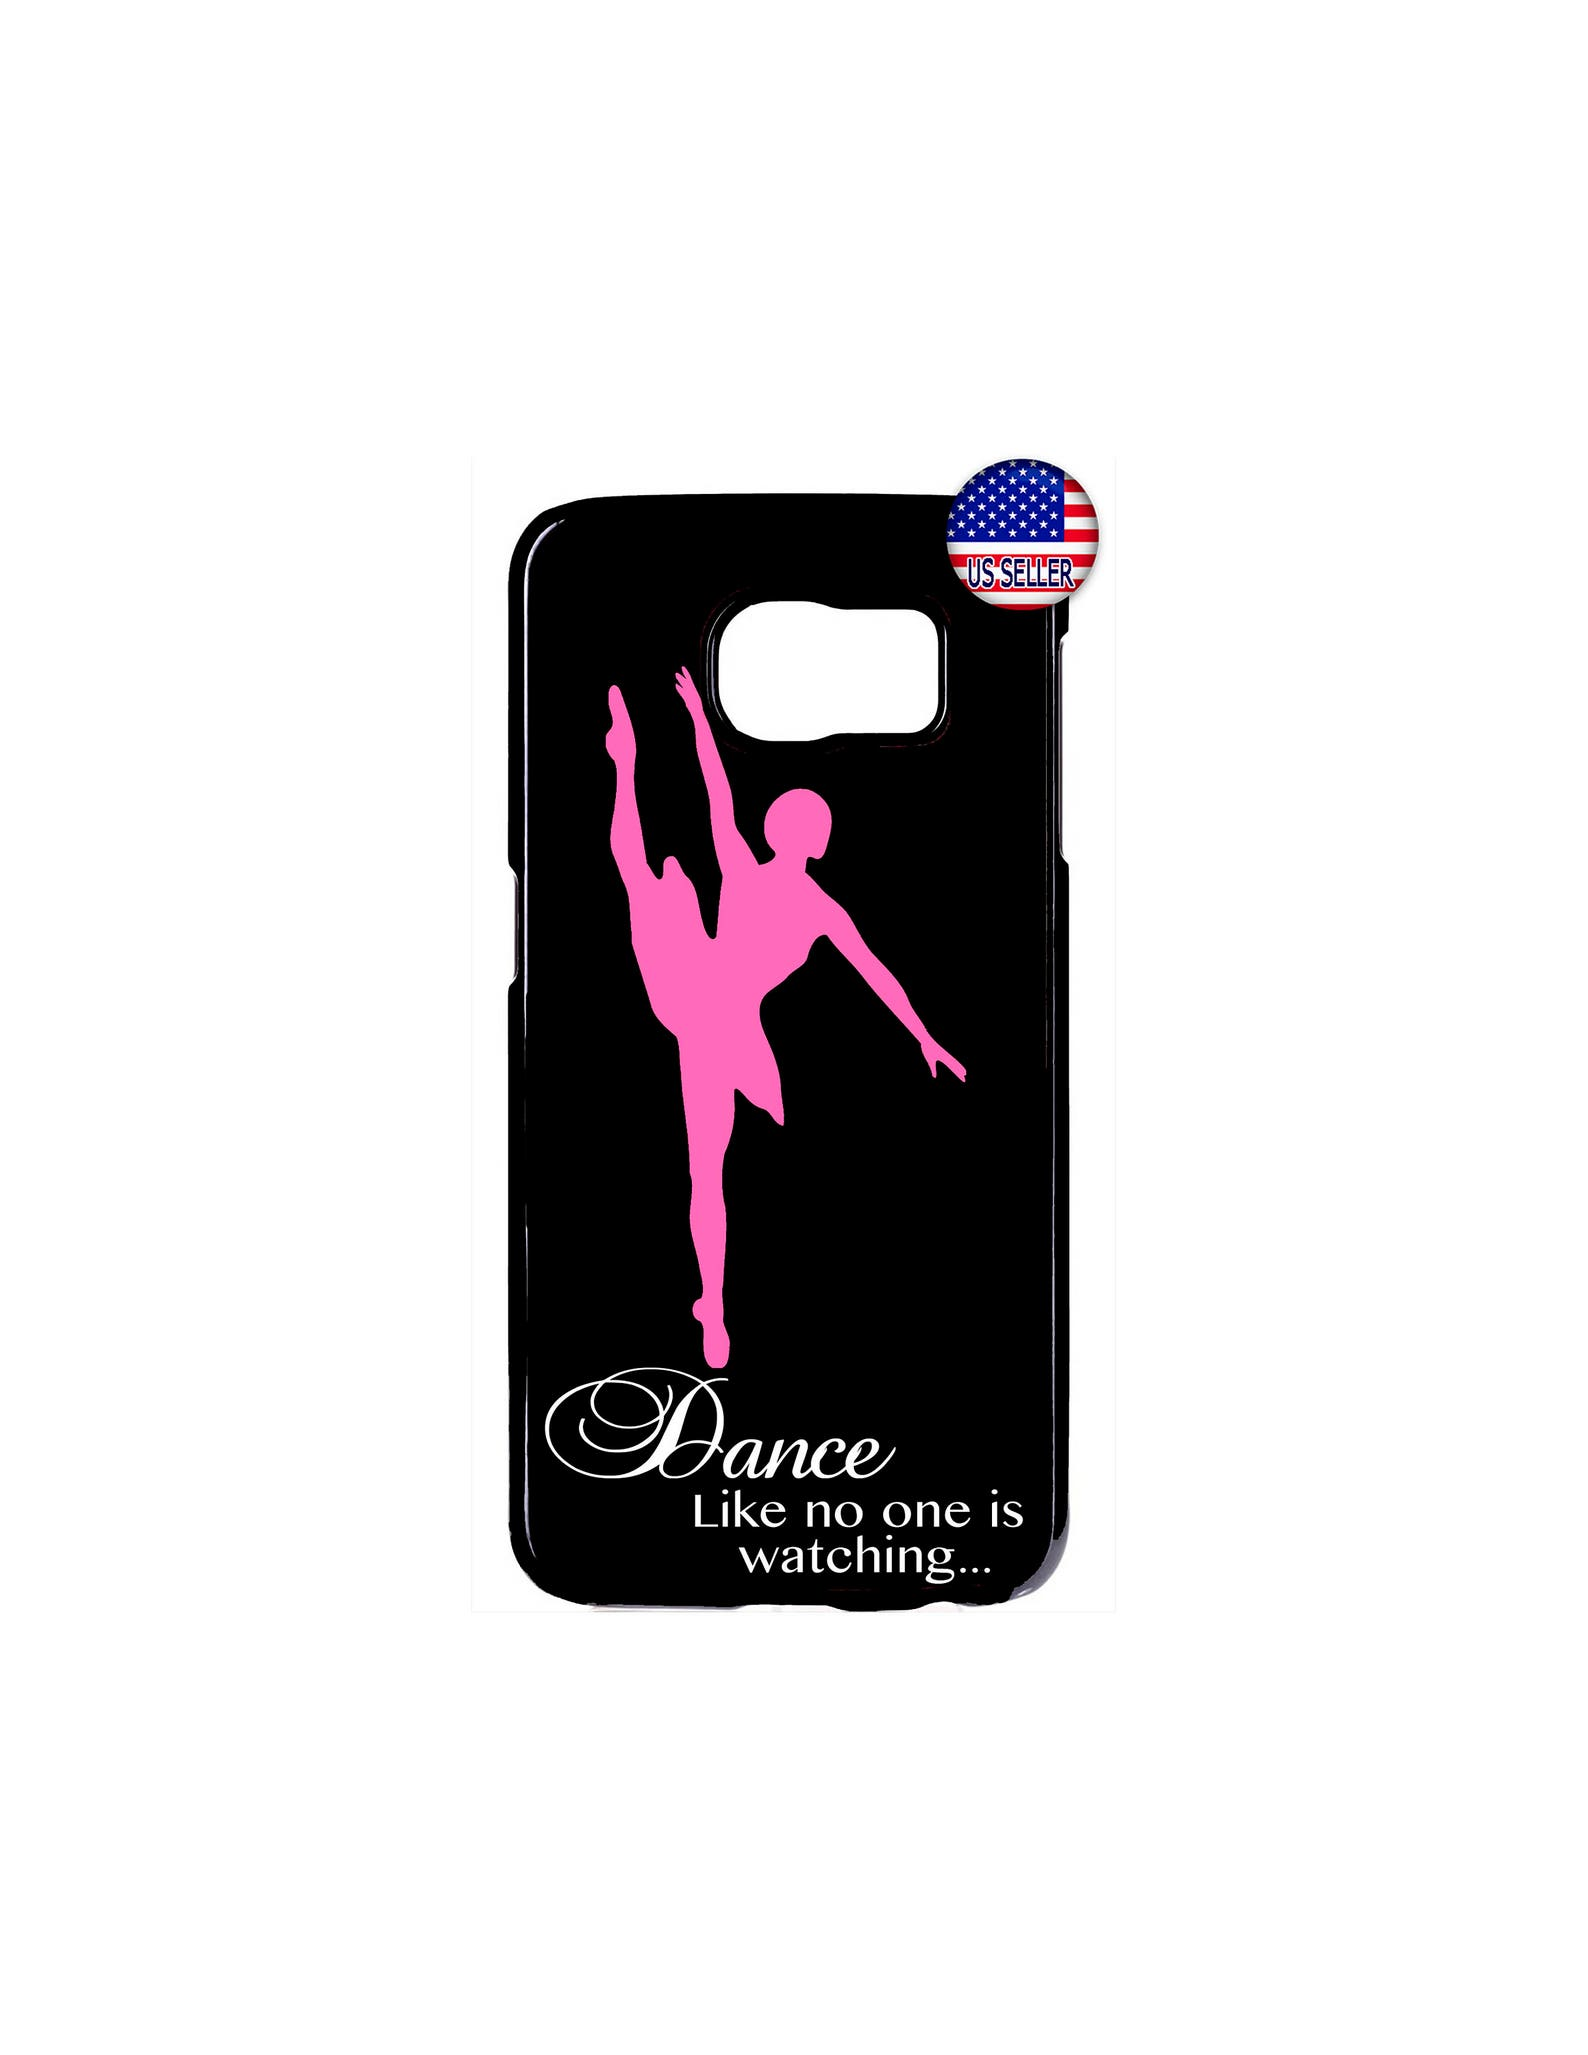 cute ballerina ballet dancer hard rubber slim case cover for samsung galaxy s9 s8 s7 plus s6 edge s5 s4 note 9 8 5 4 ipod touch